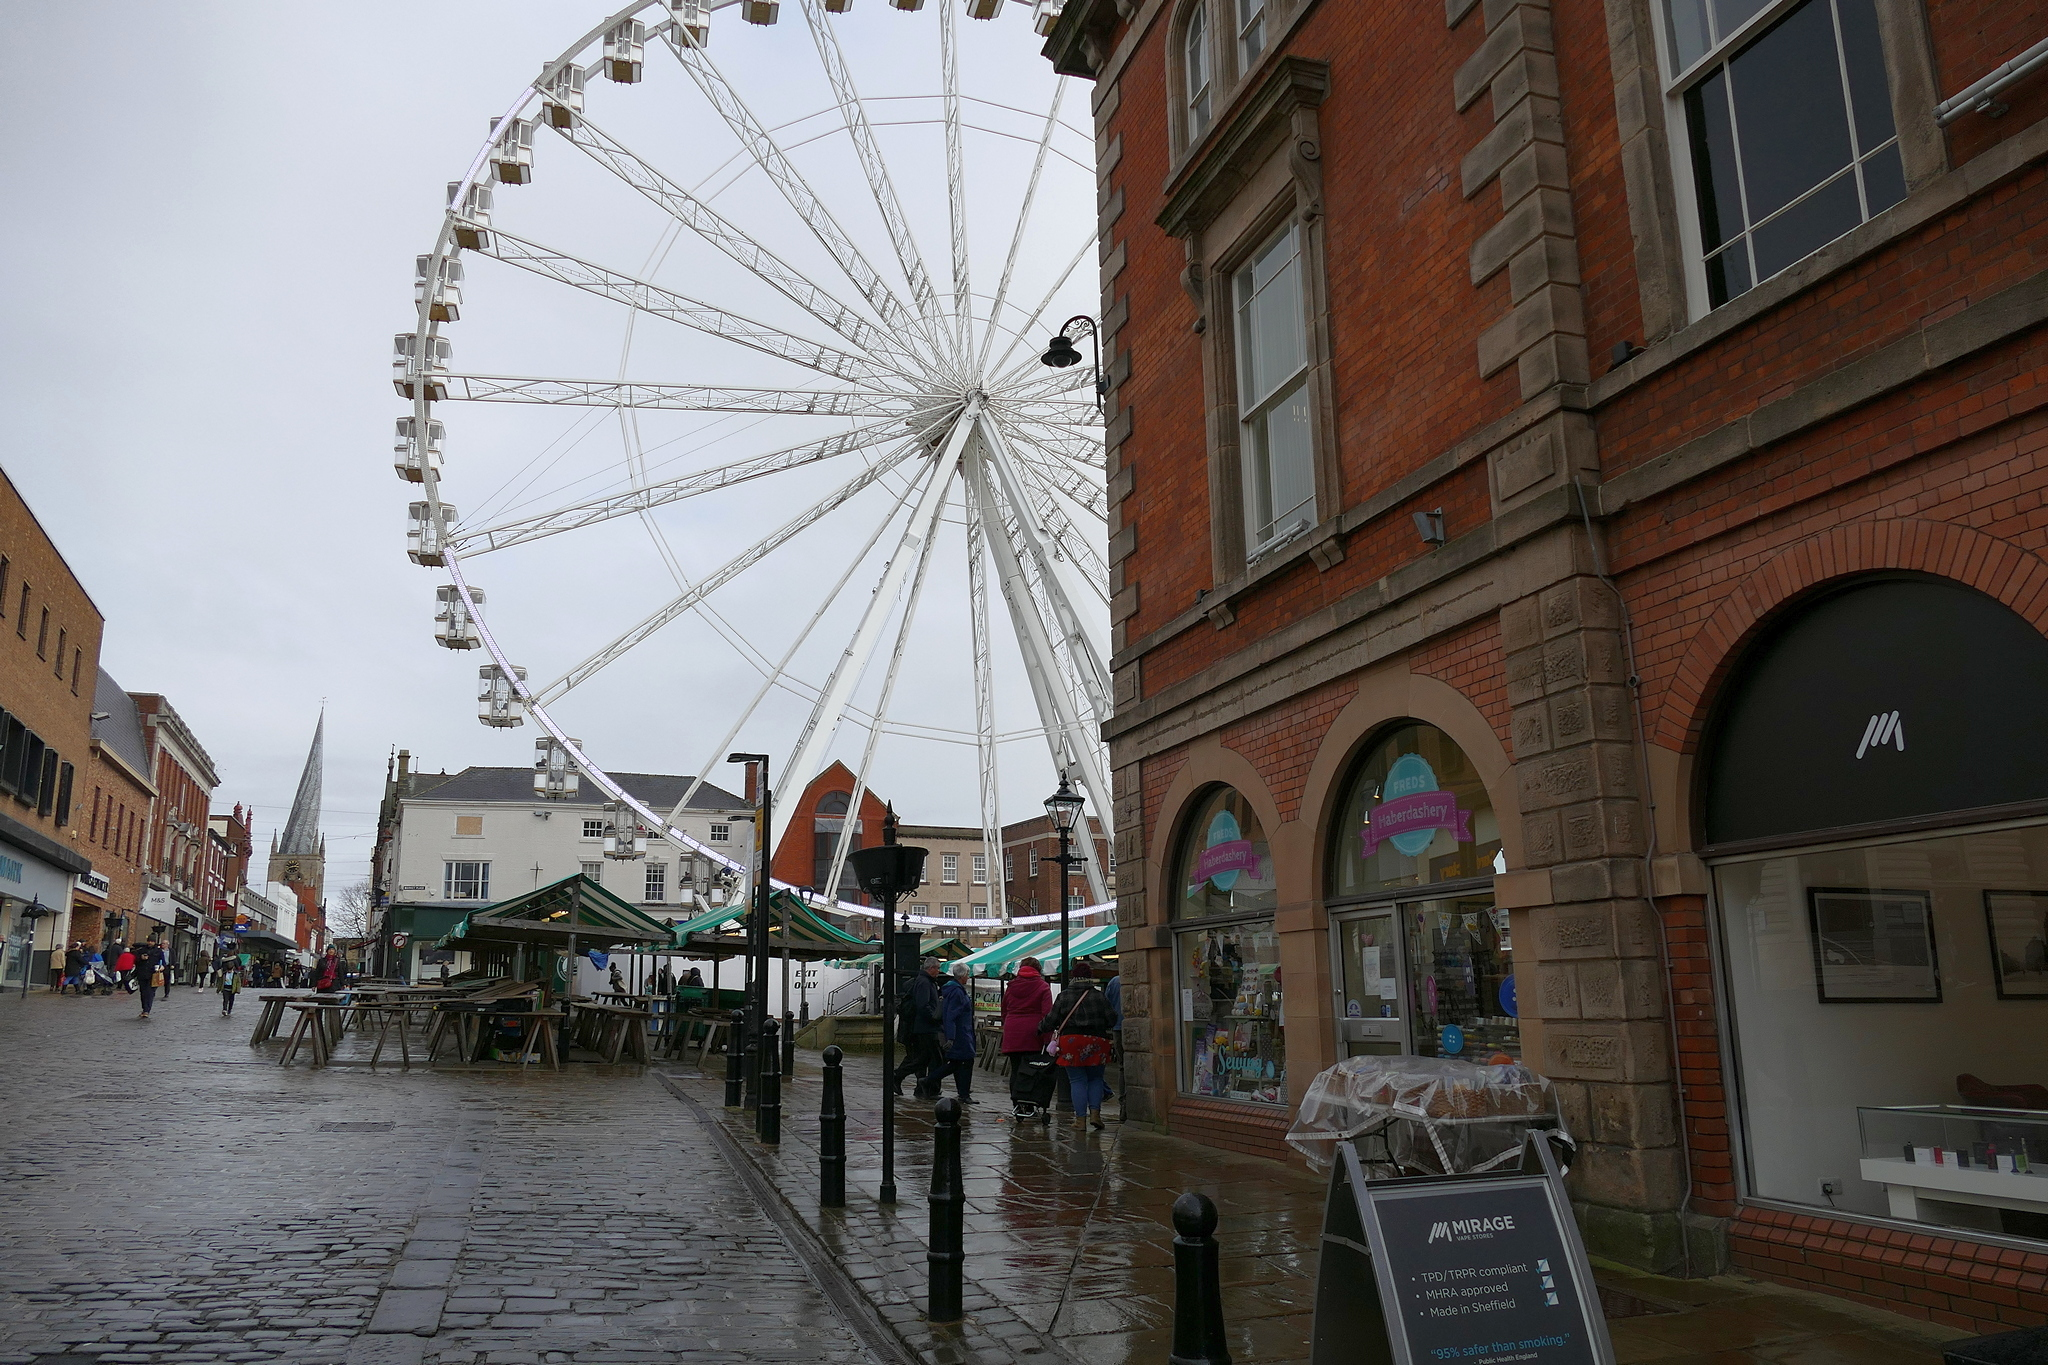 Chesterfield Market Place Wheel 013